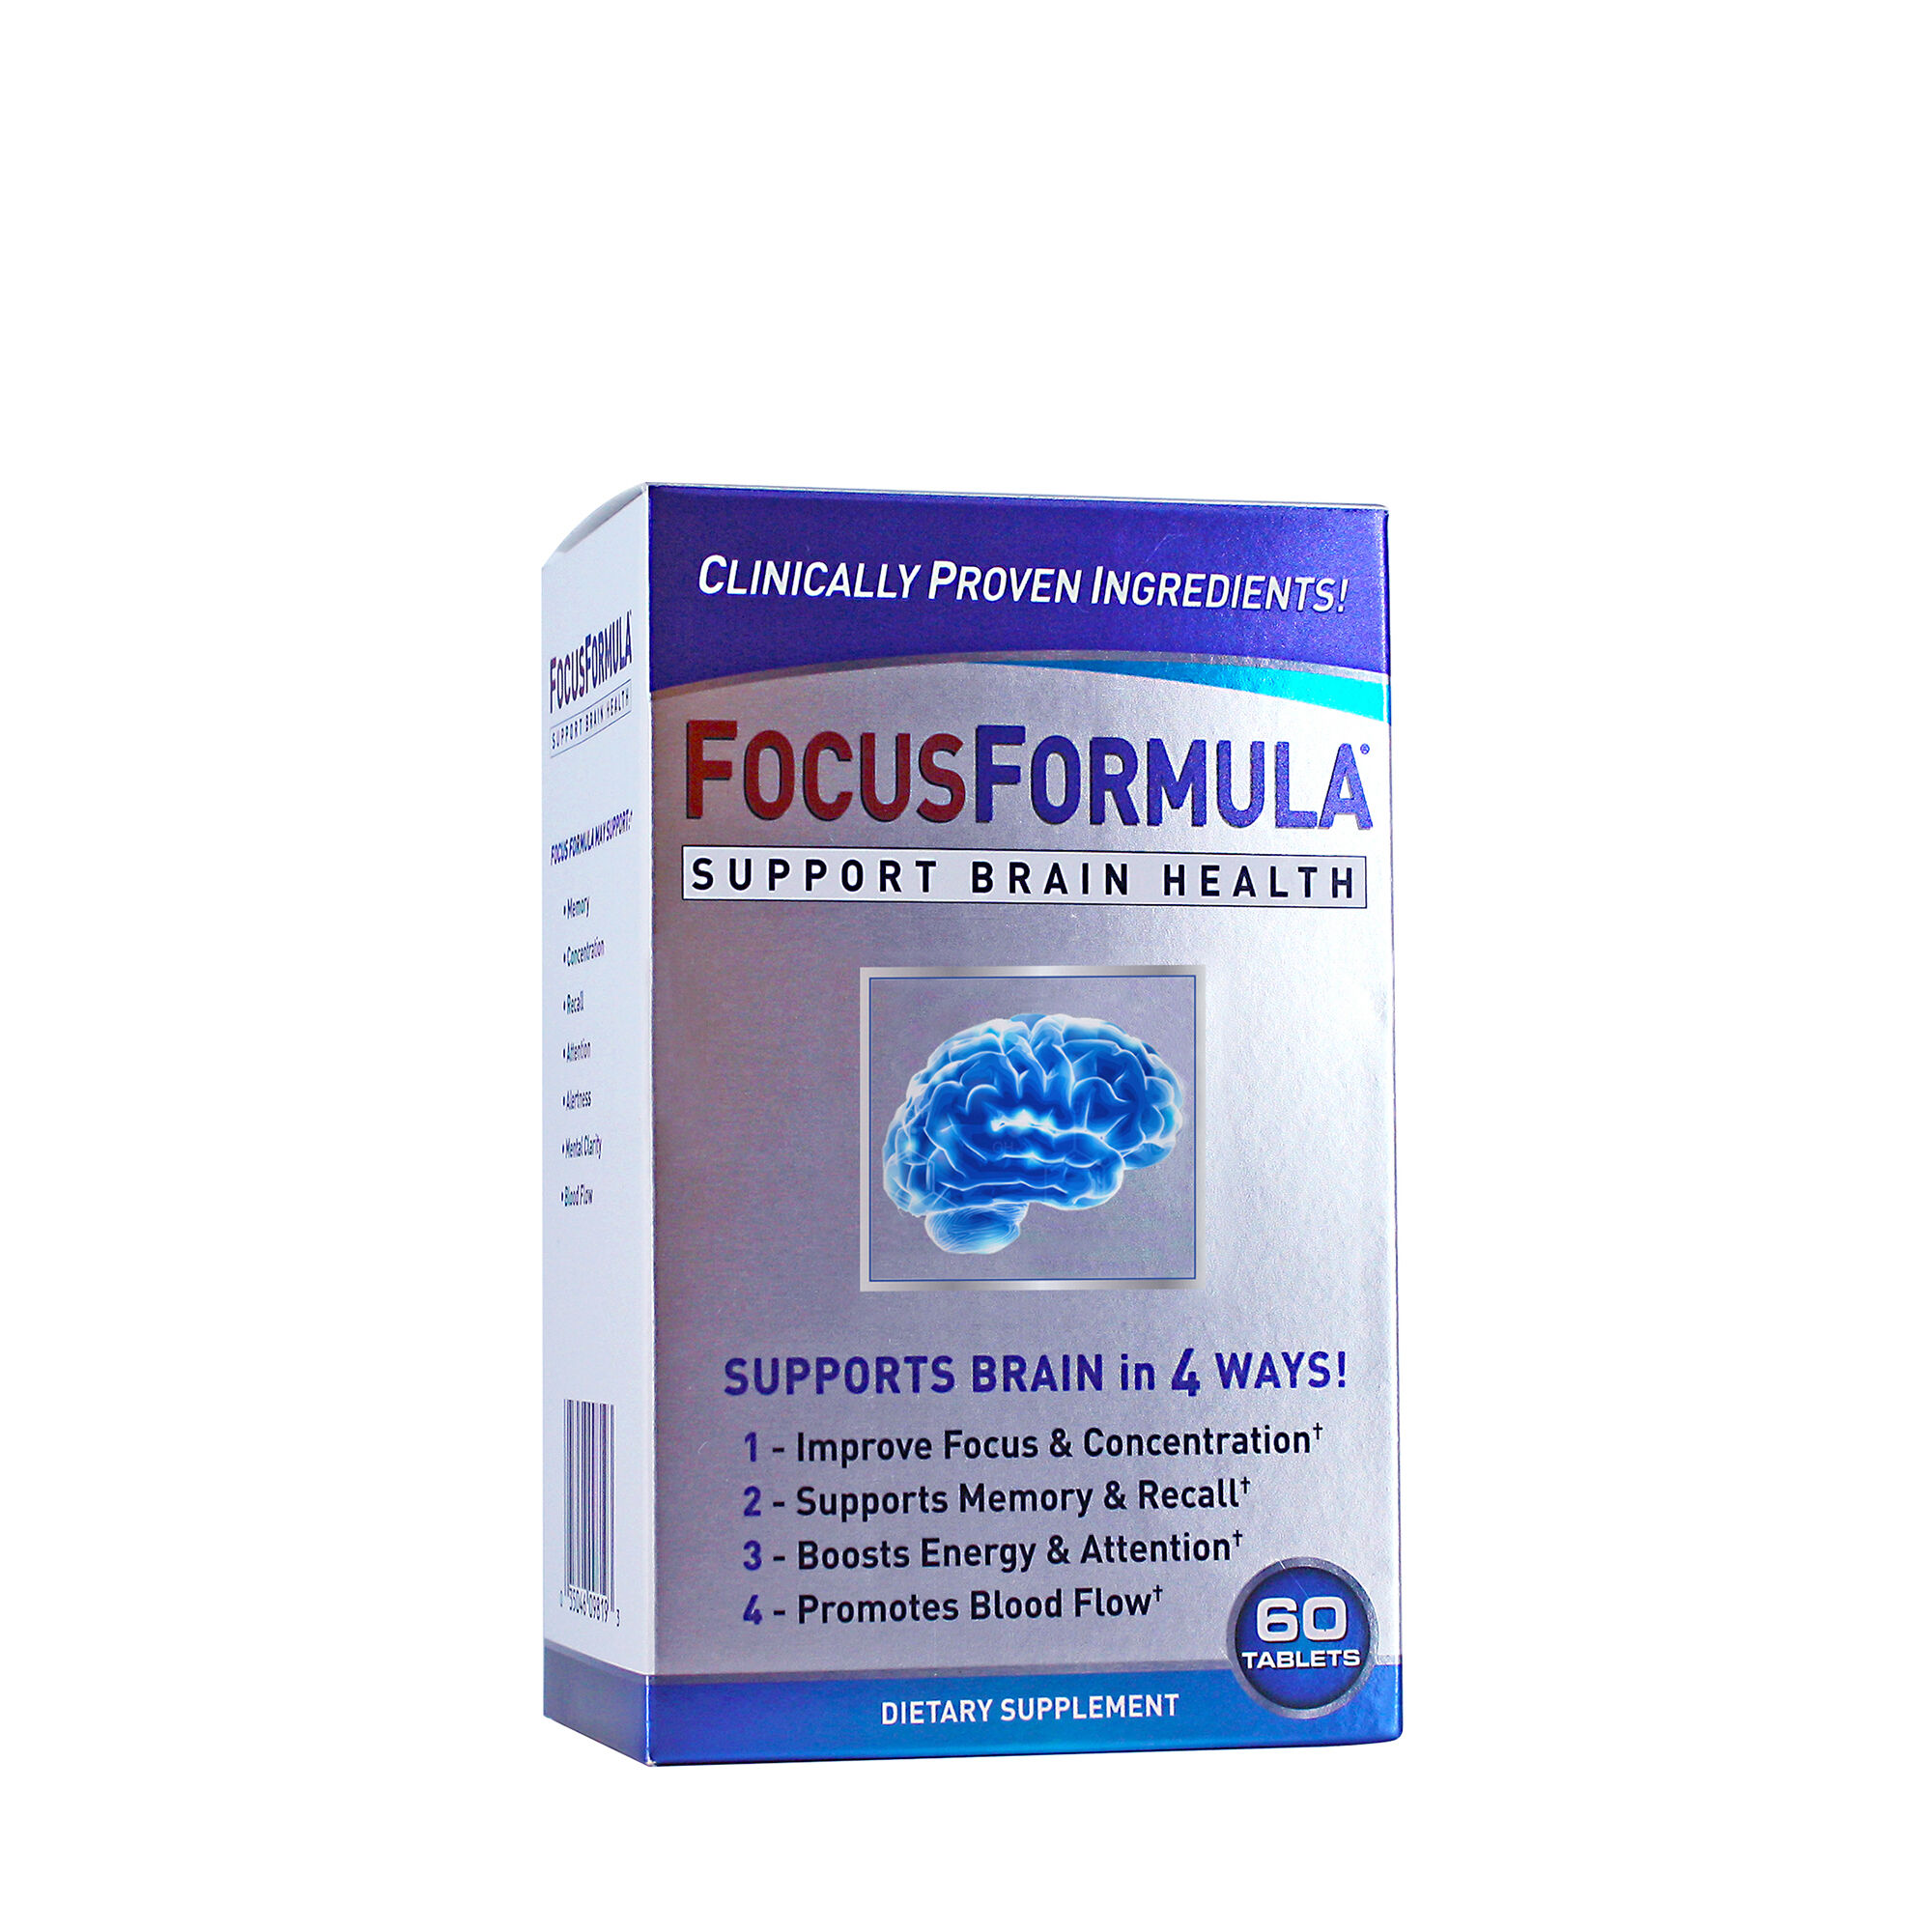 Focus Formula Review – 12 Facts You Need to Know